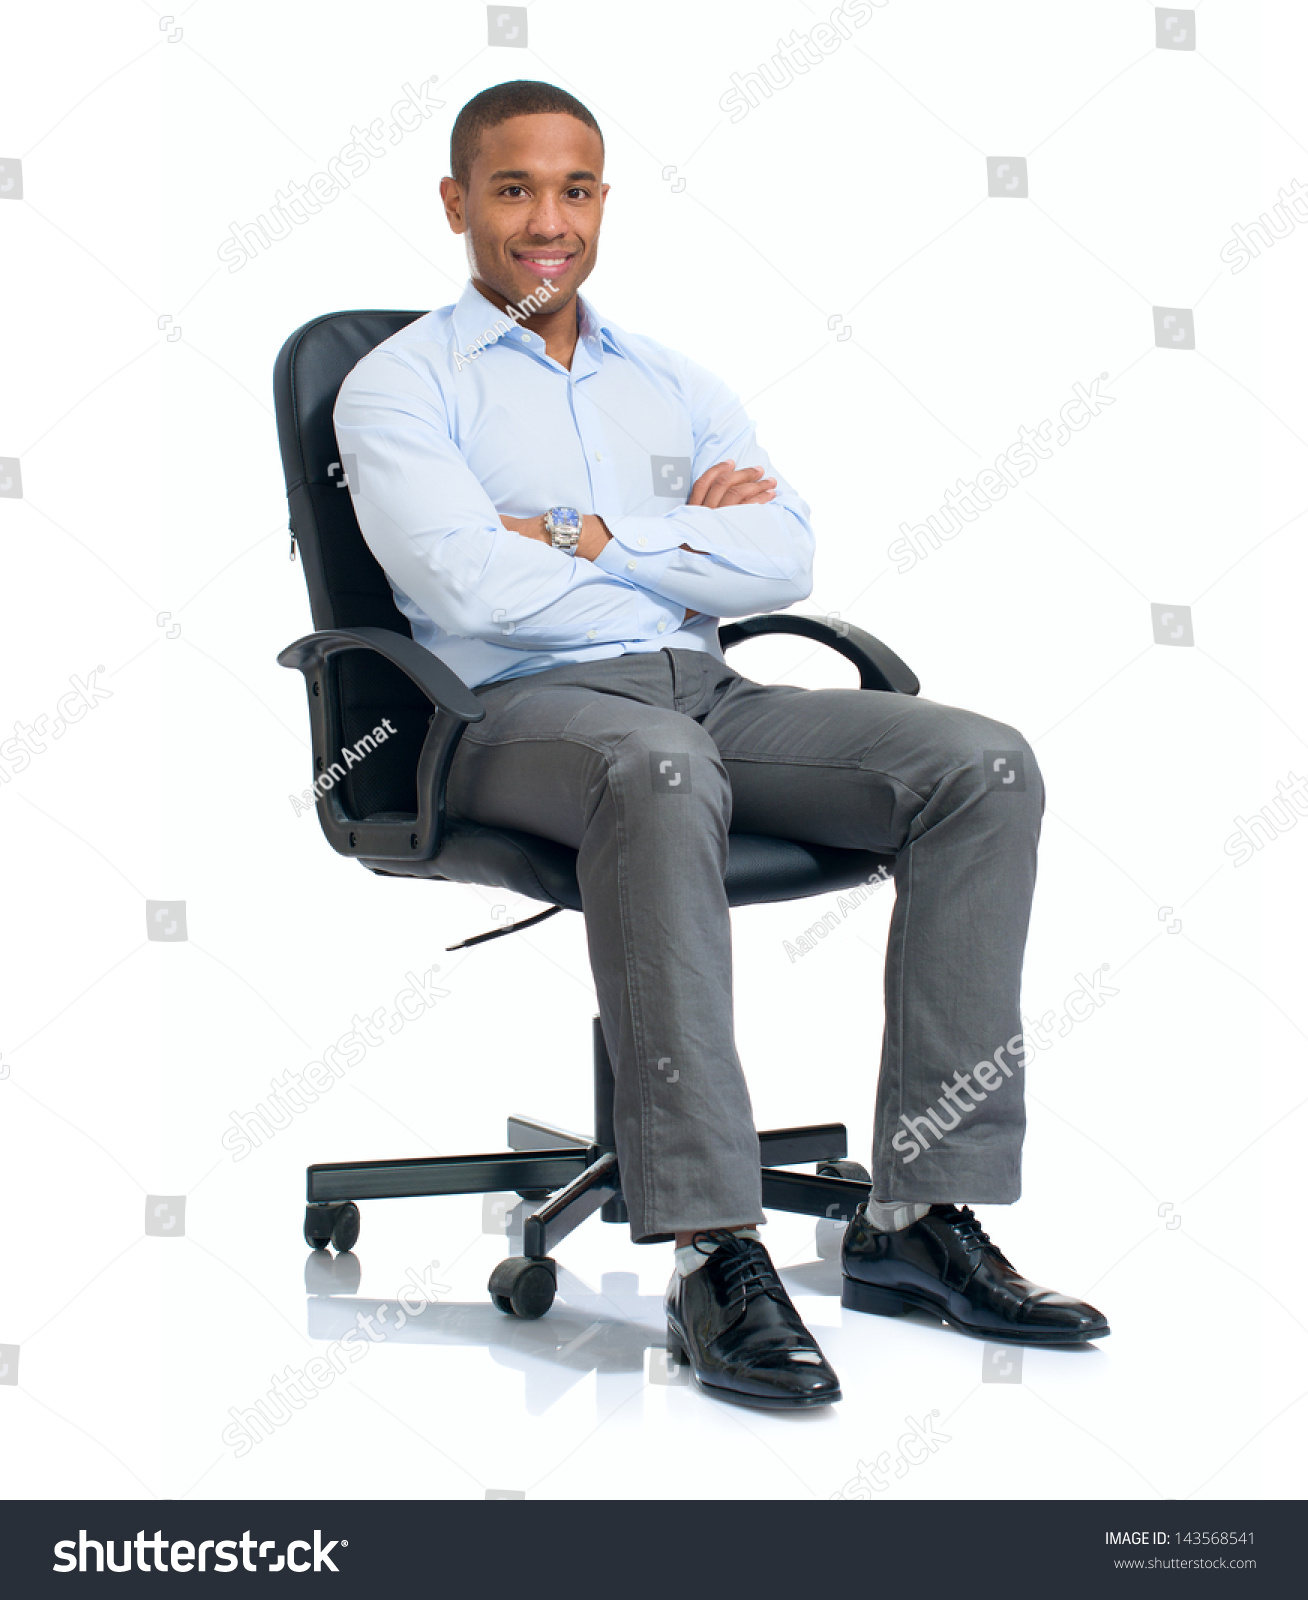 stock-photo-young-african-businessman-sitting-on-chair-over-white-background-143568541.jpg